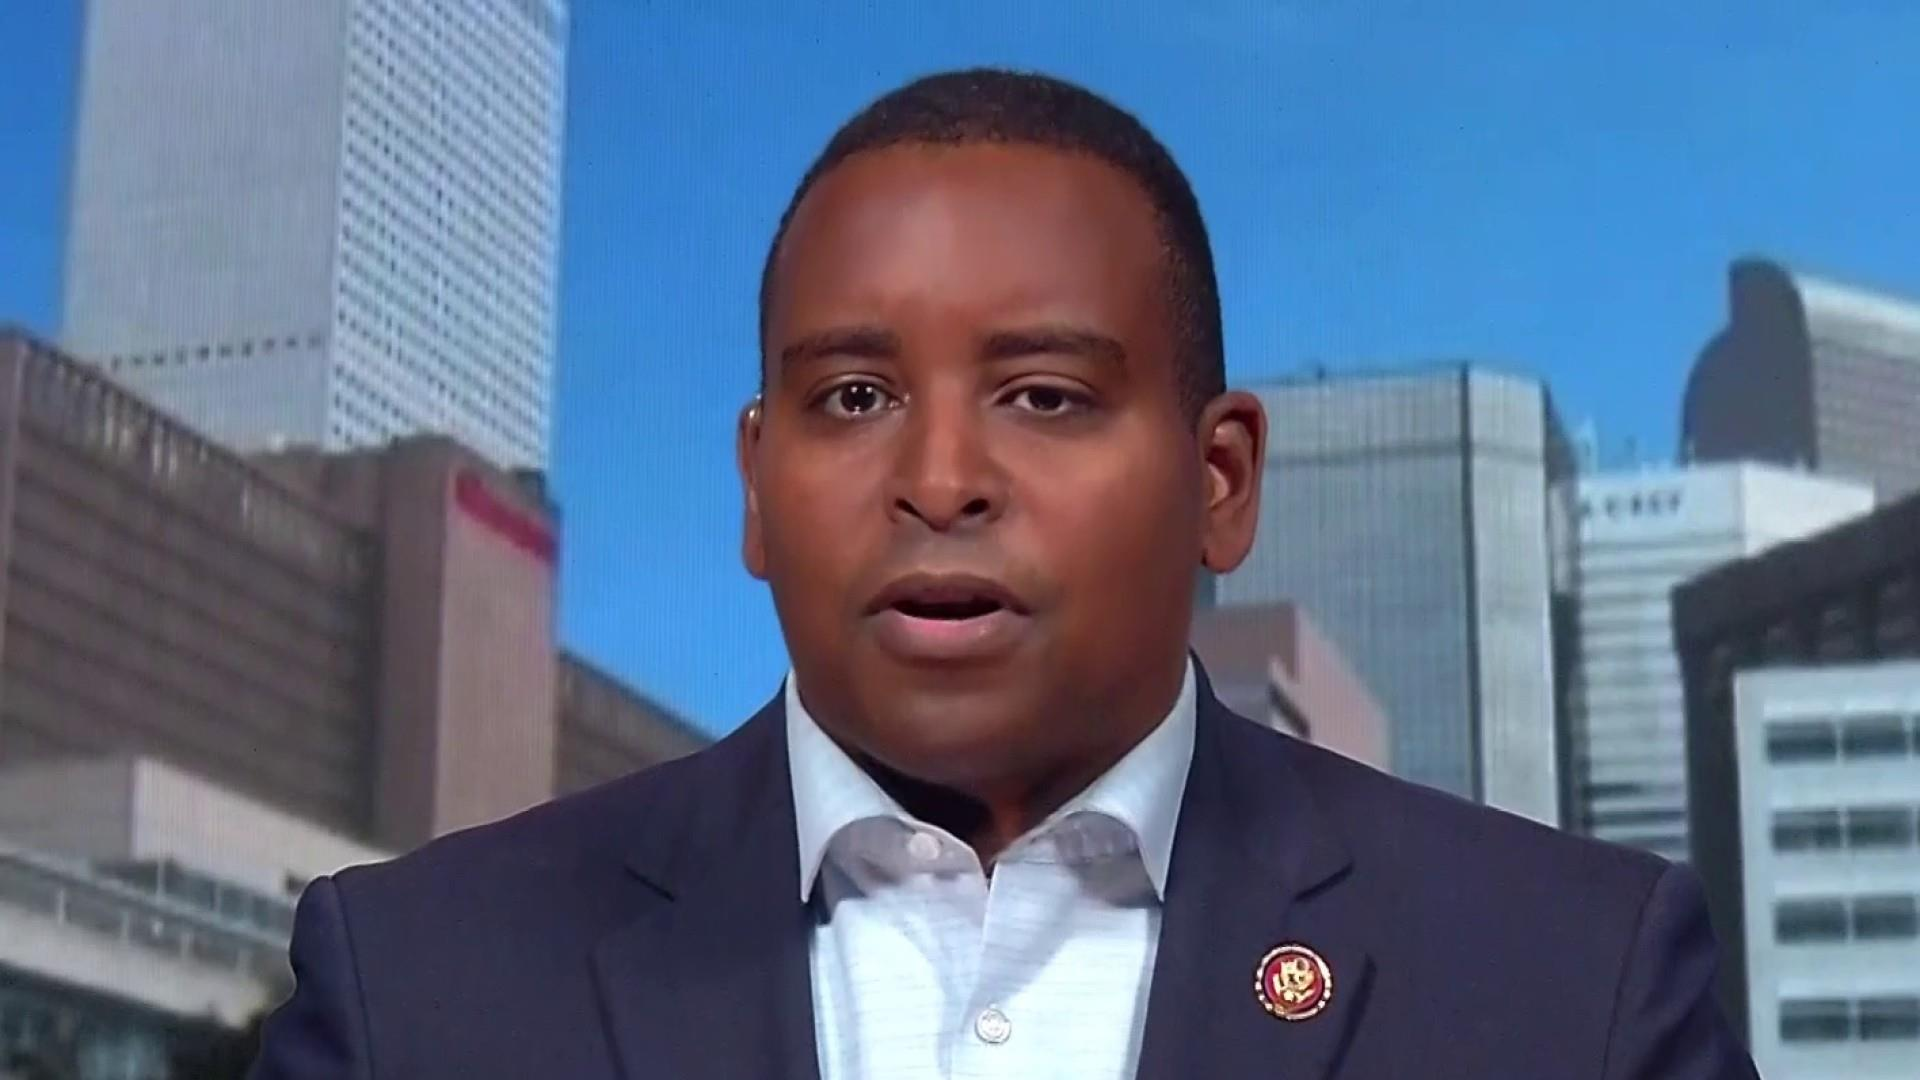 Rep. Neguse on impeachment: 'This has nothing to do with politics and everything to do with defending our republic and our constitution'